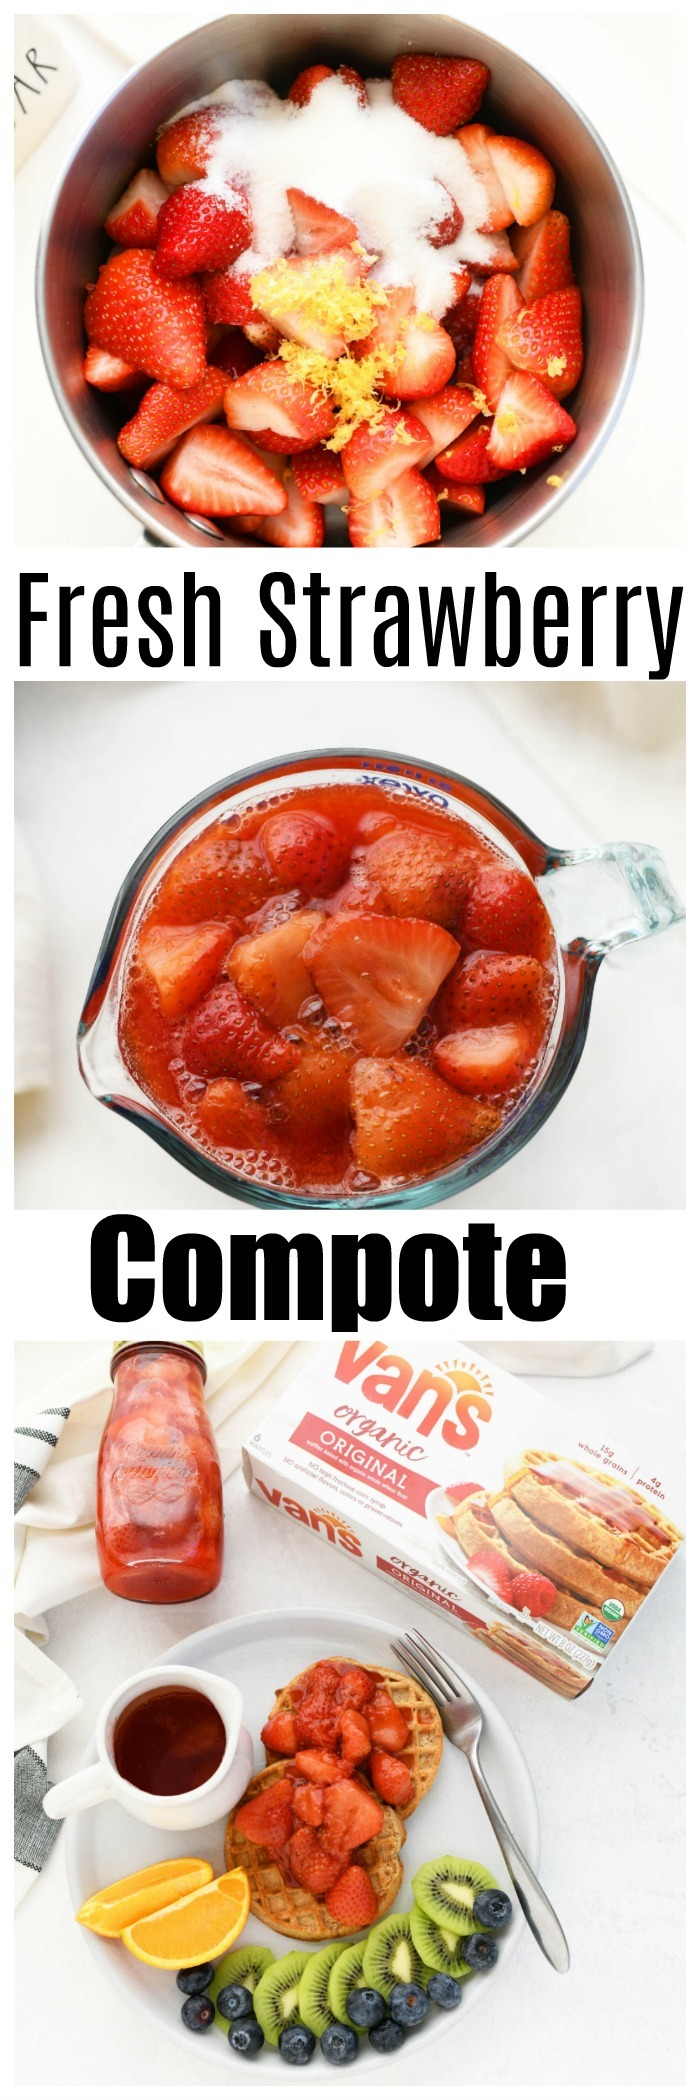 Quick & Easy Strawberry Compote Recipe